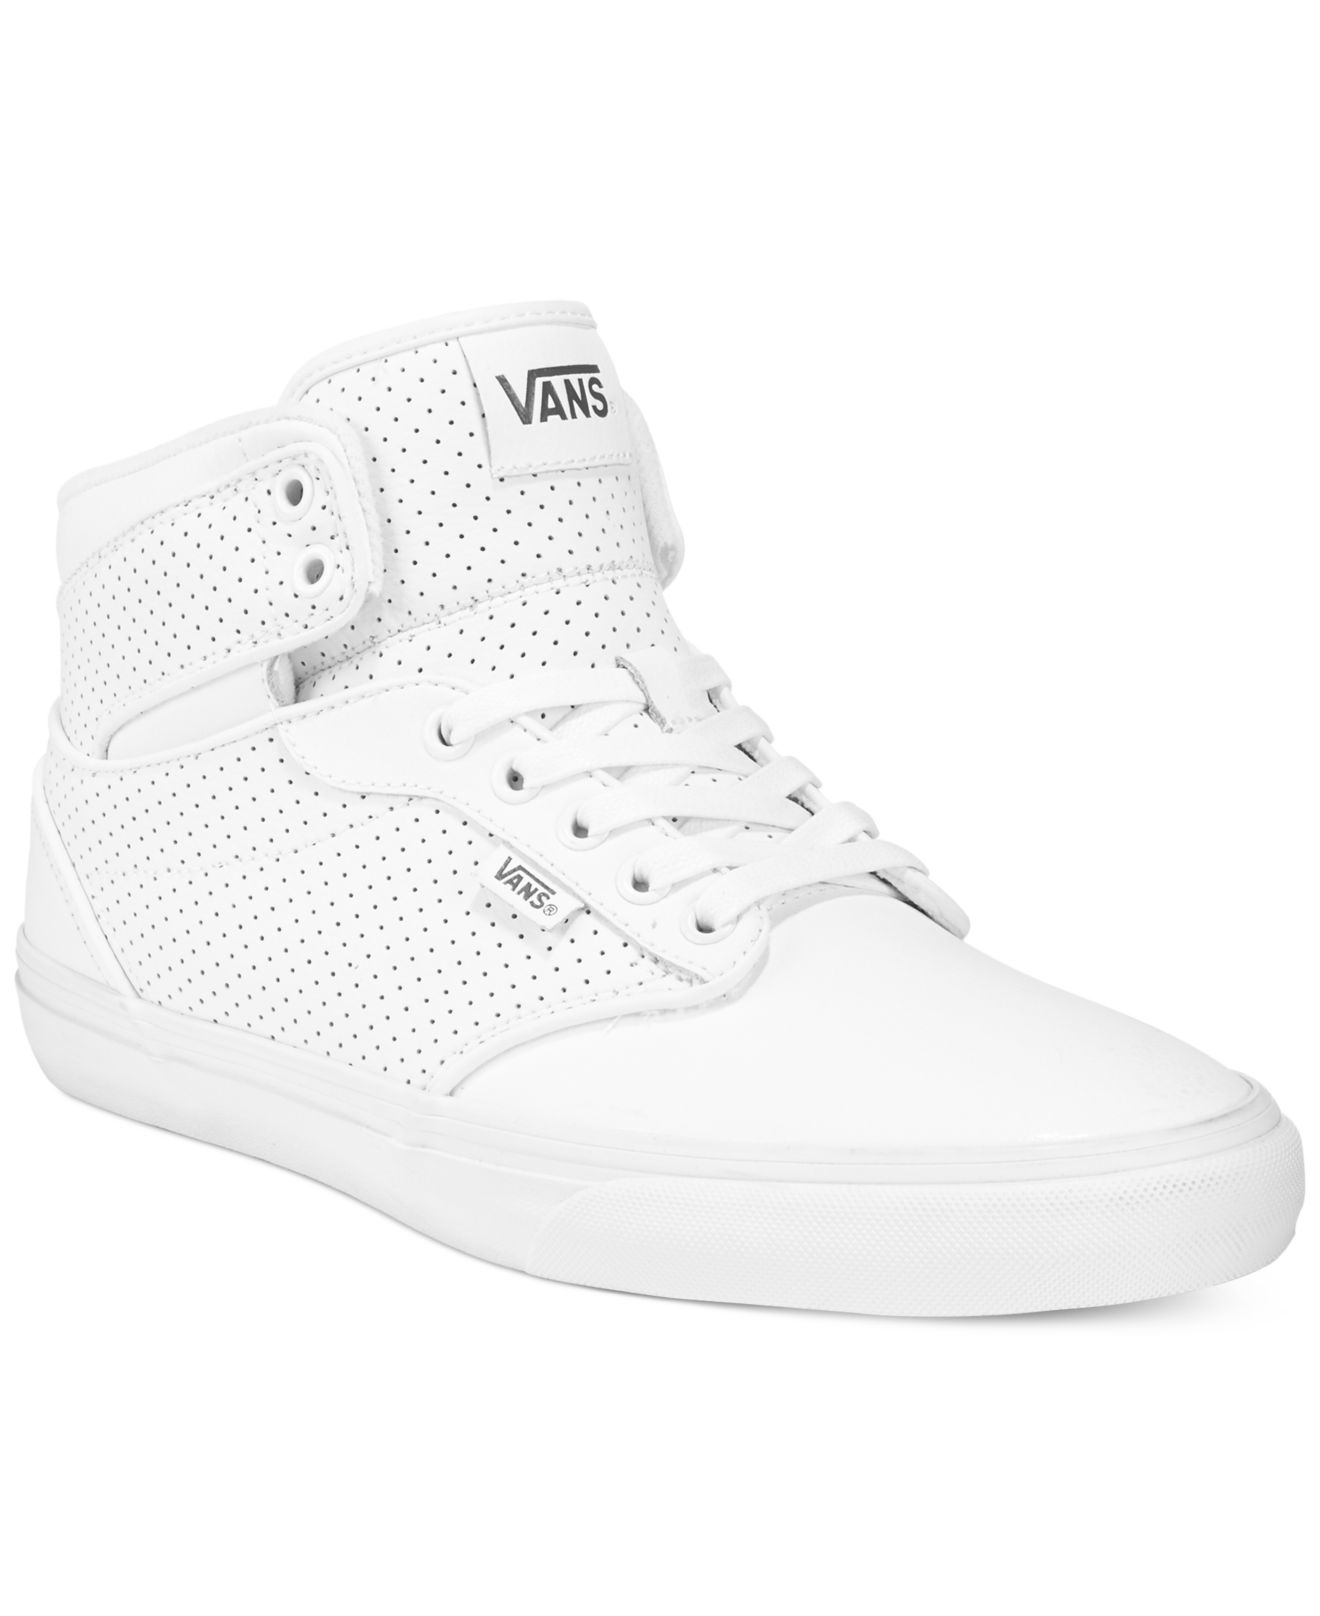 3f4e798fef2 Lyst - Vans Men s Atwood Hi-top Sneakers in White for Men